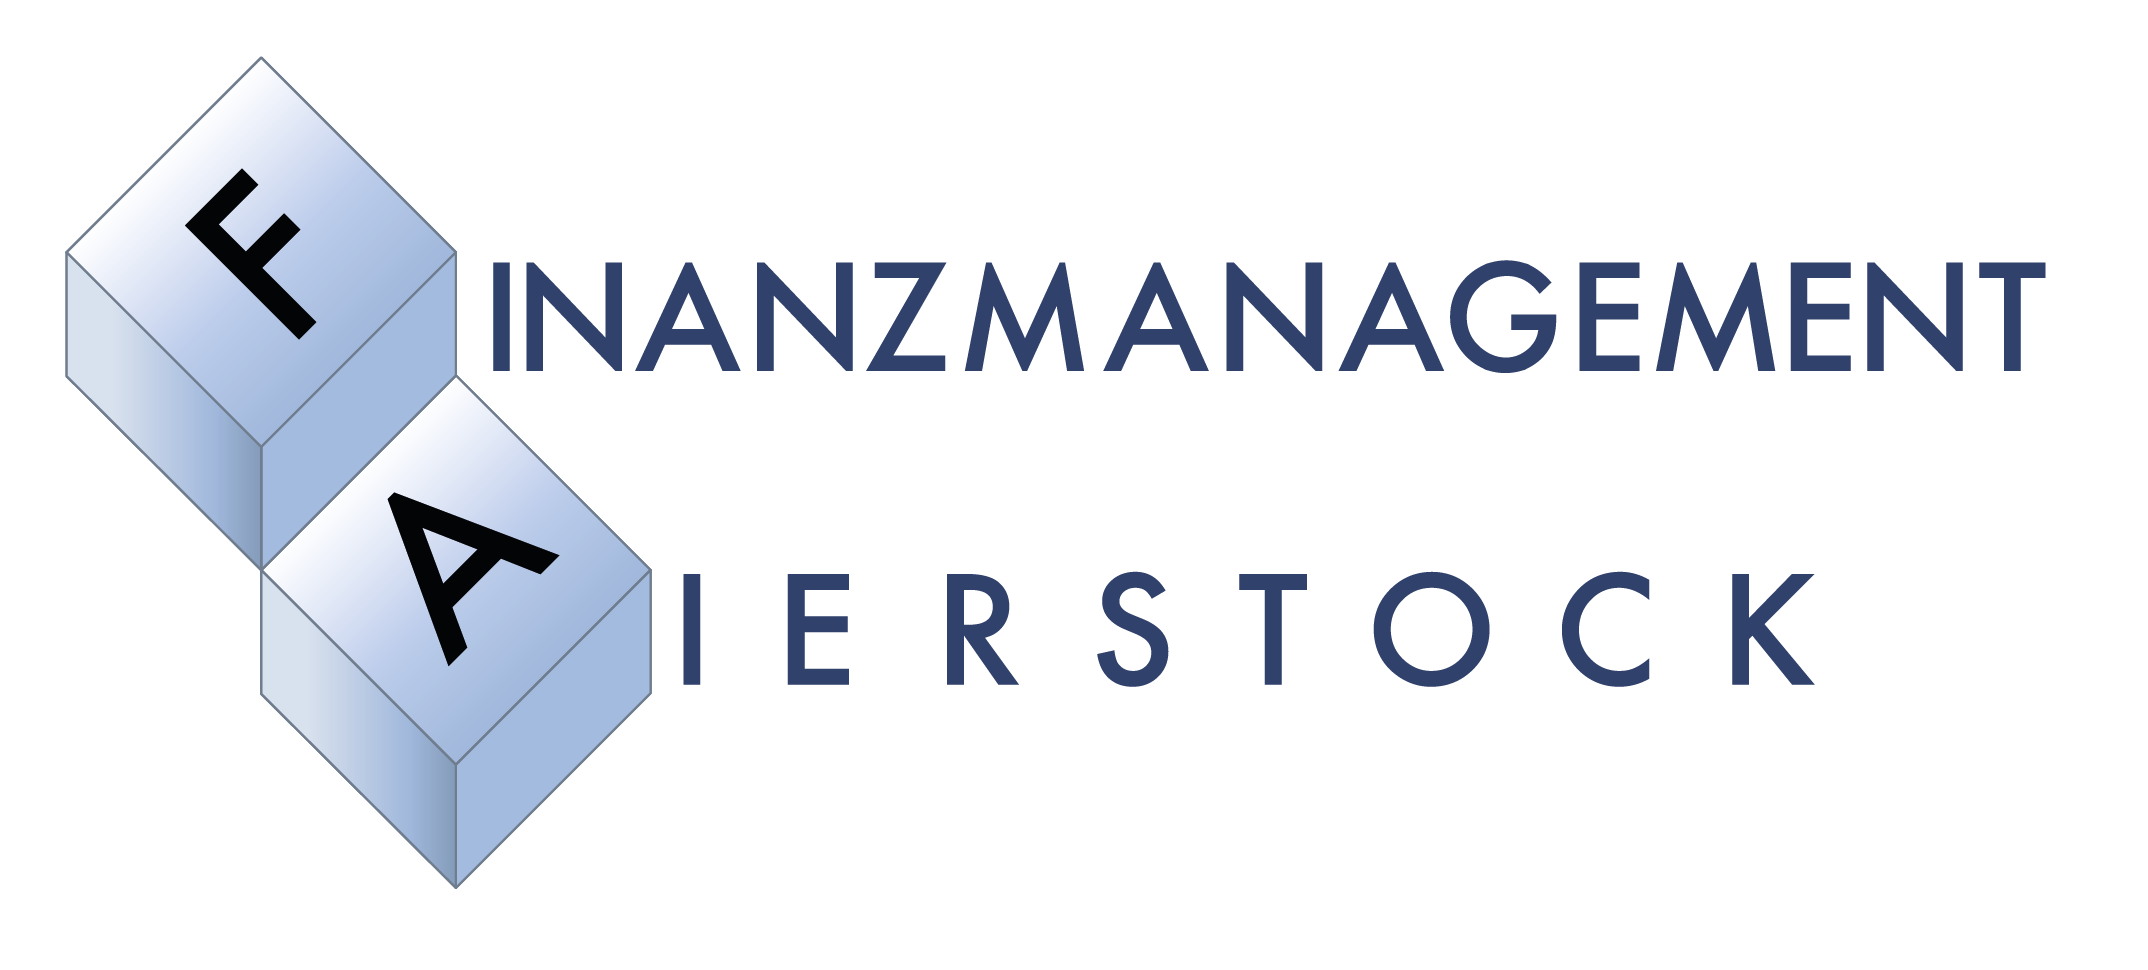 Finanzmanagement Aierstock